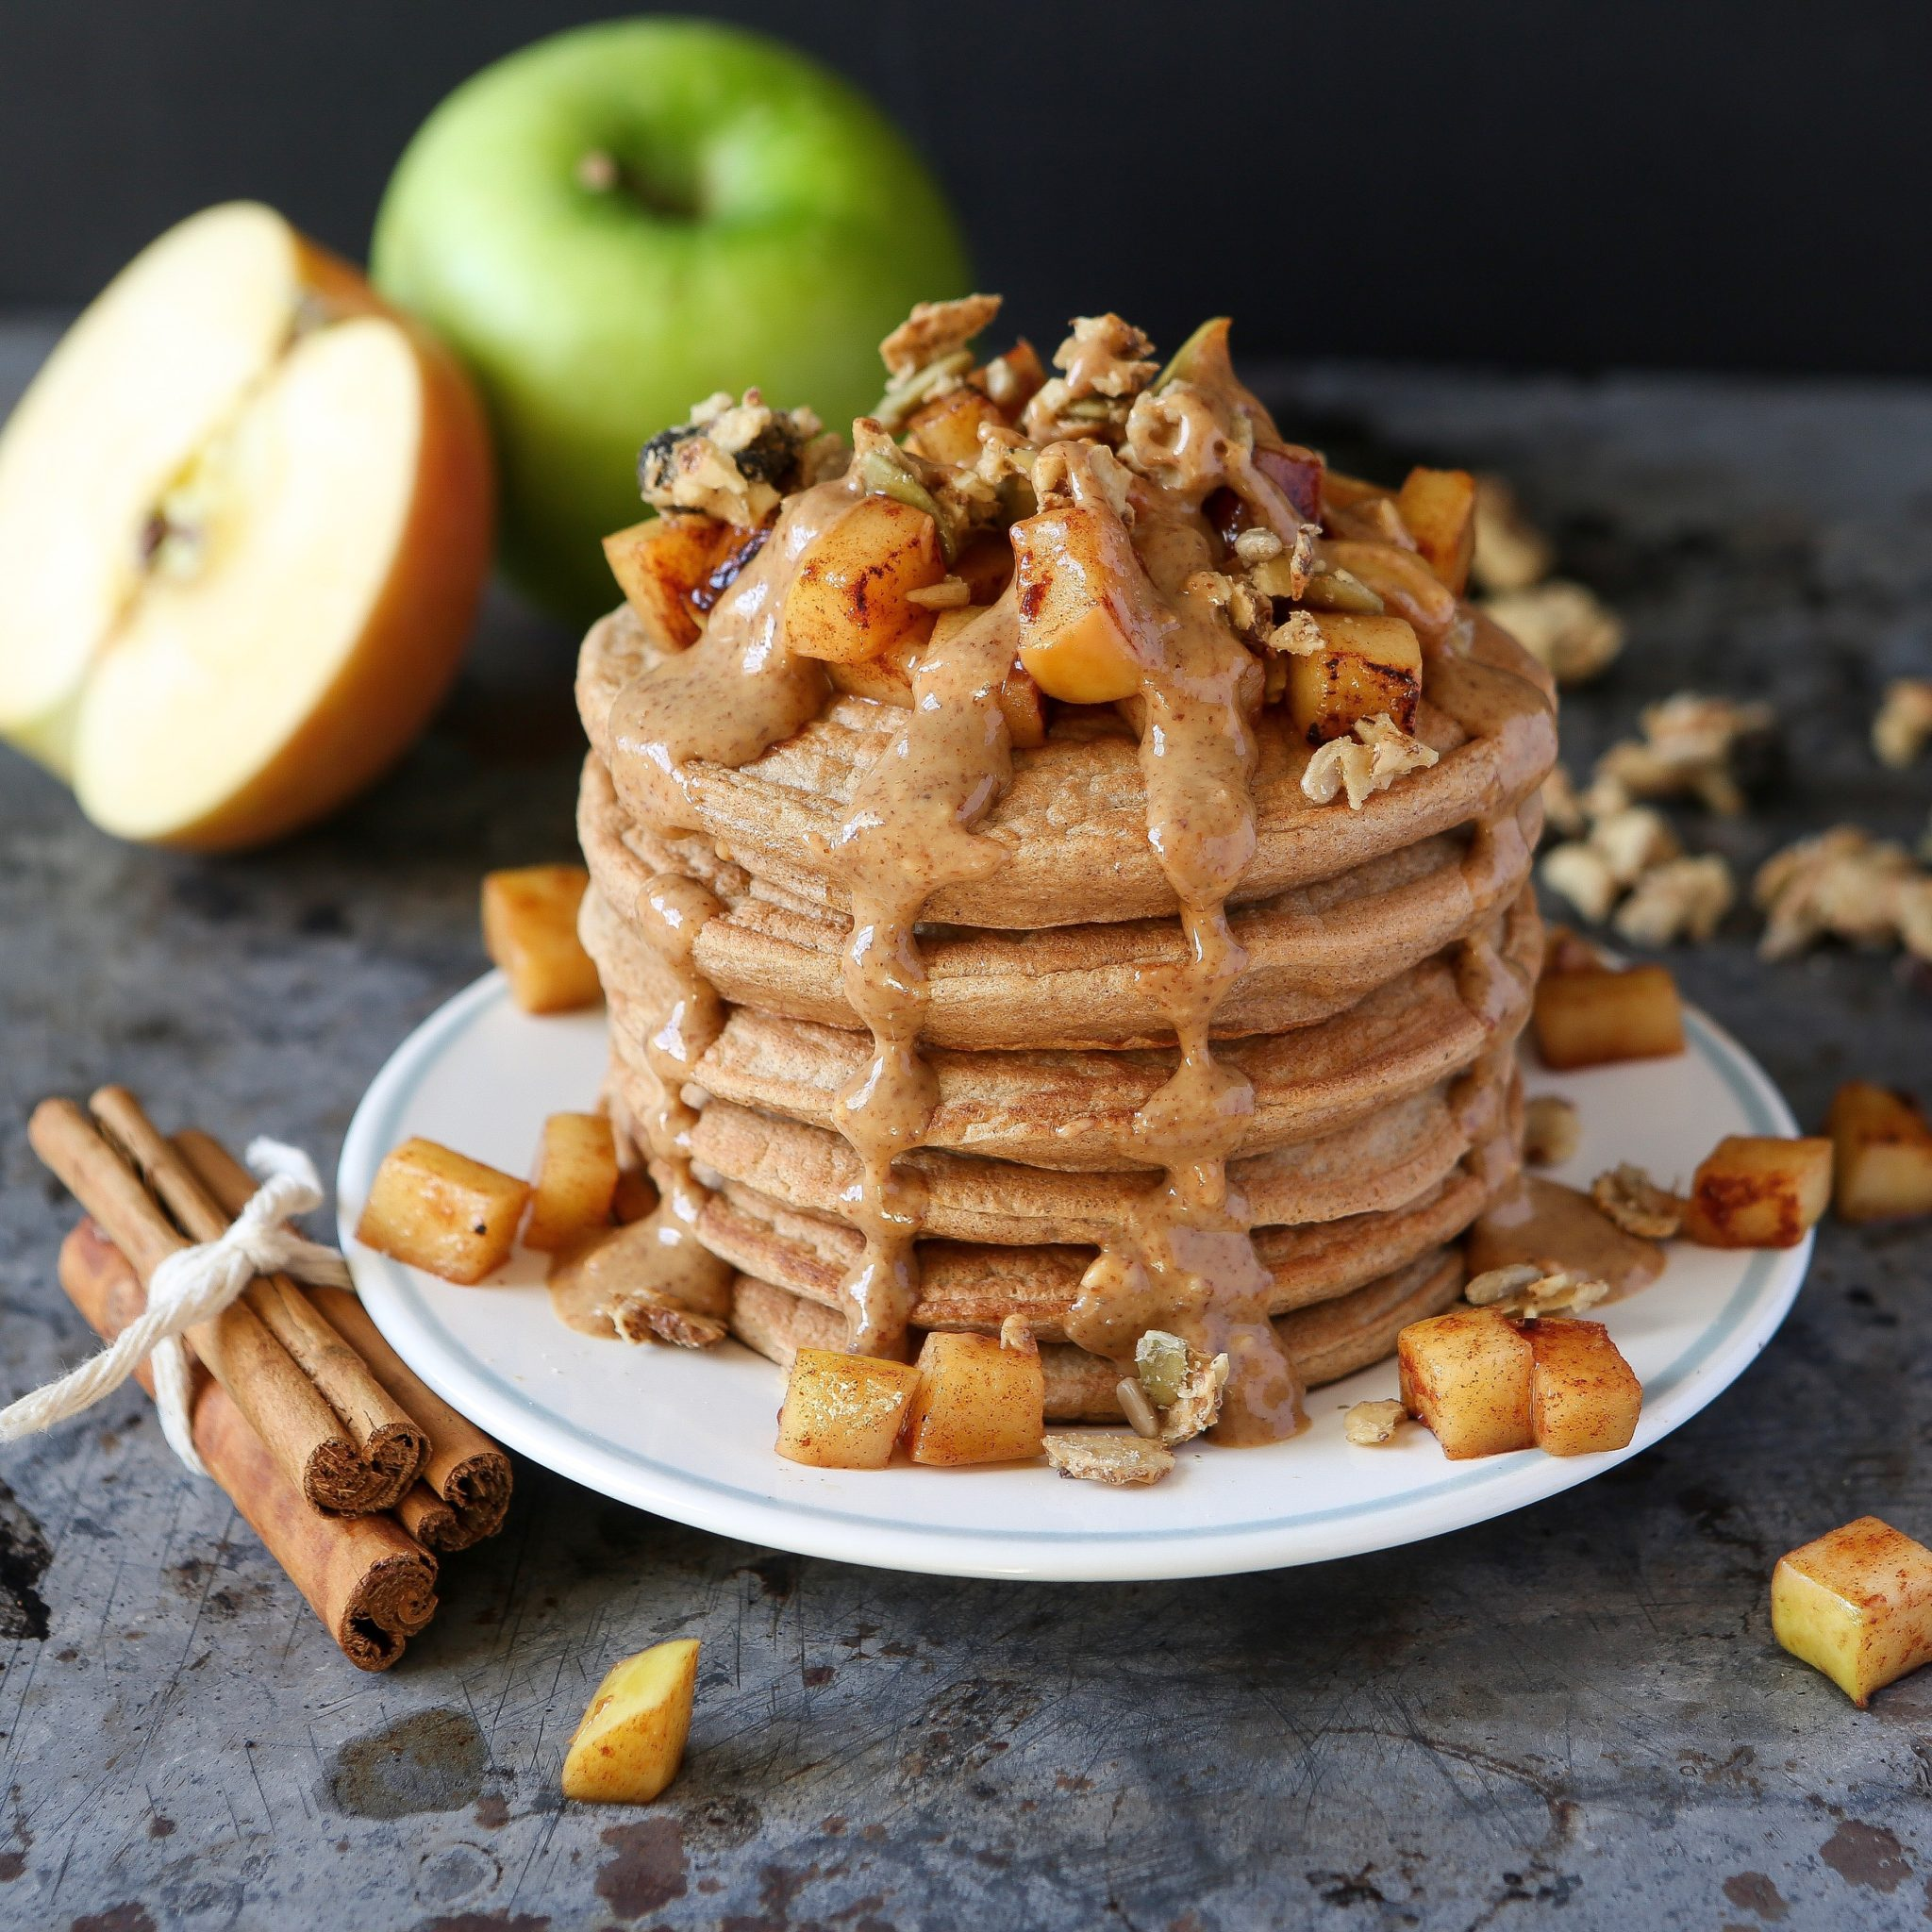 Apple Cinnamon Pancakes (Gluten-Free + Low Carb)